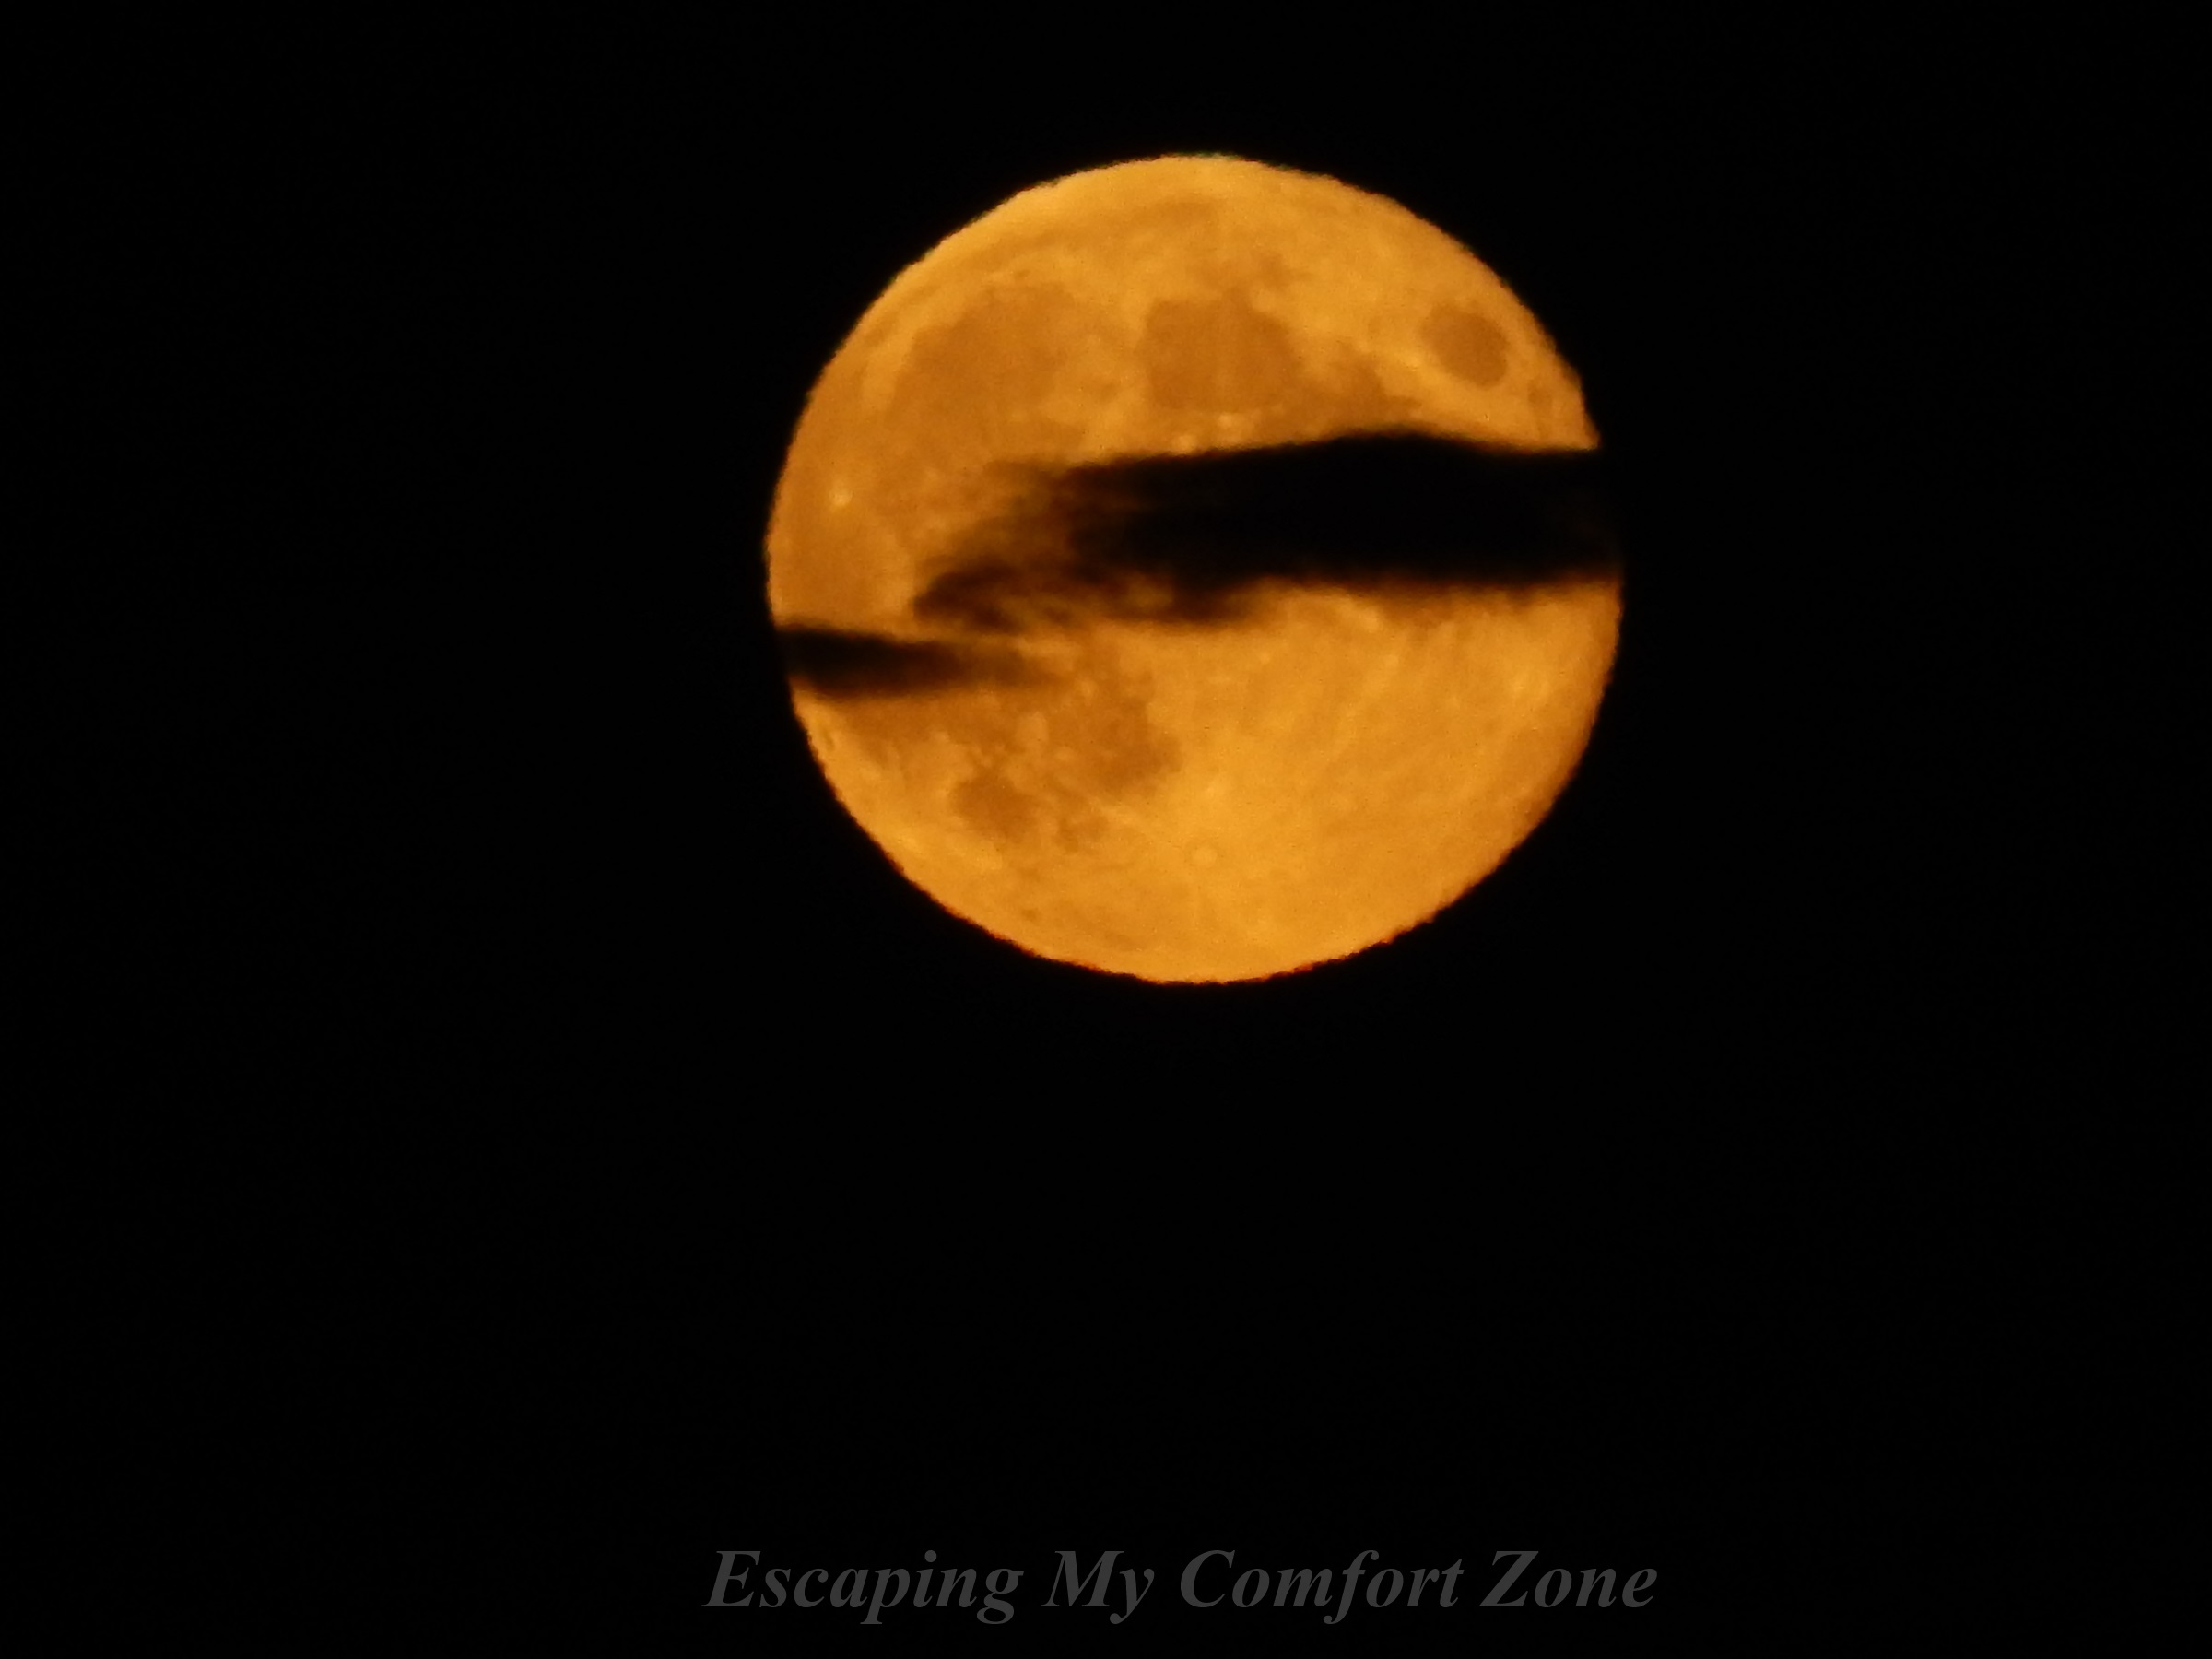 harvest-moon-and-wispy-clouds